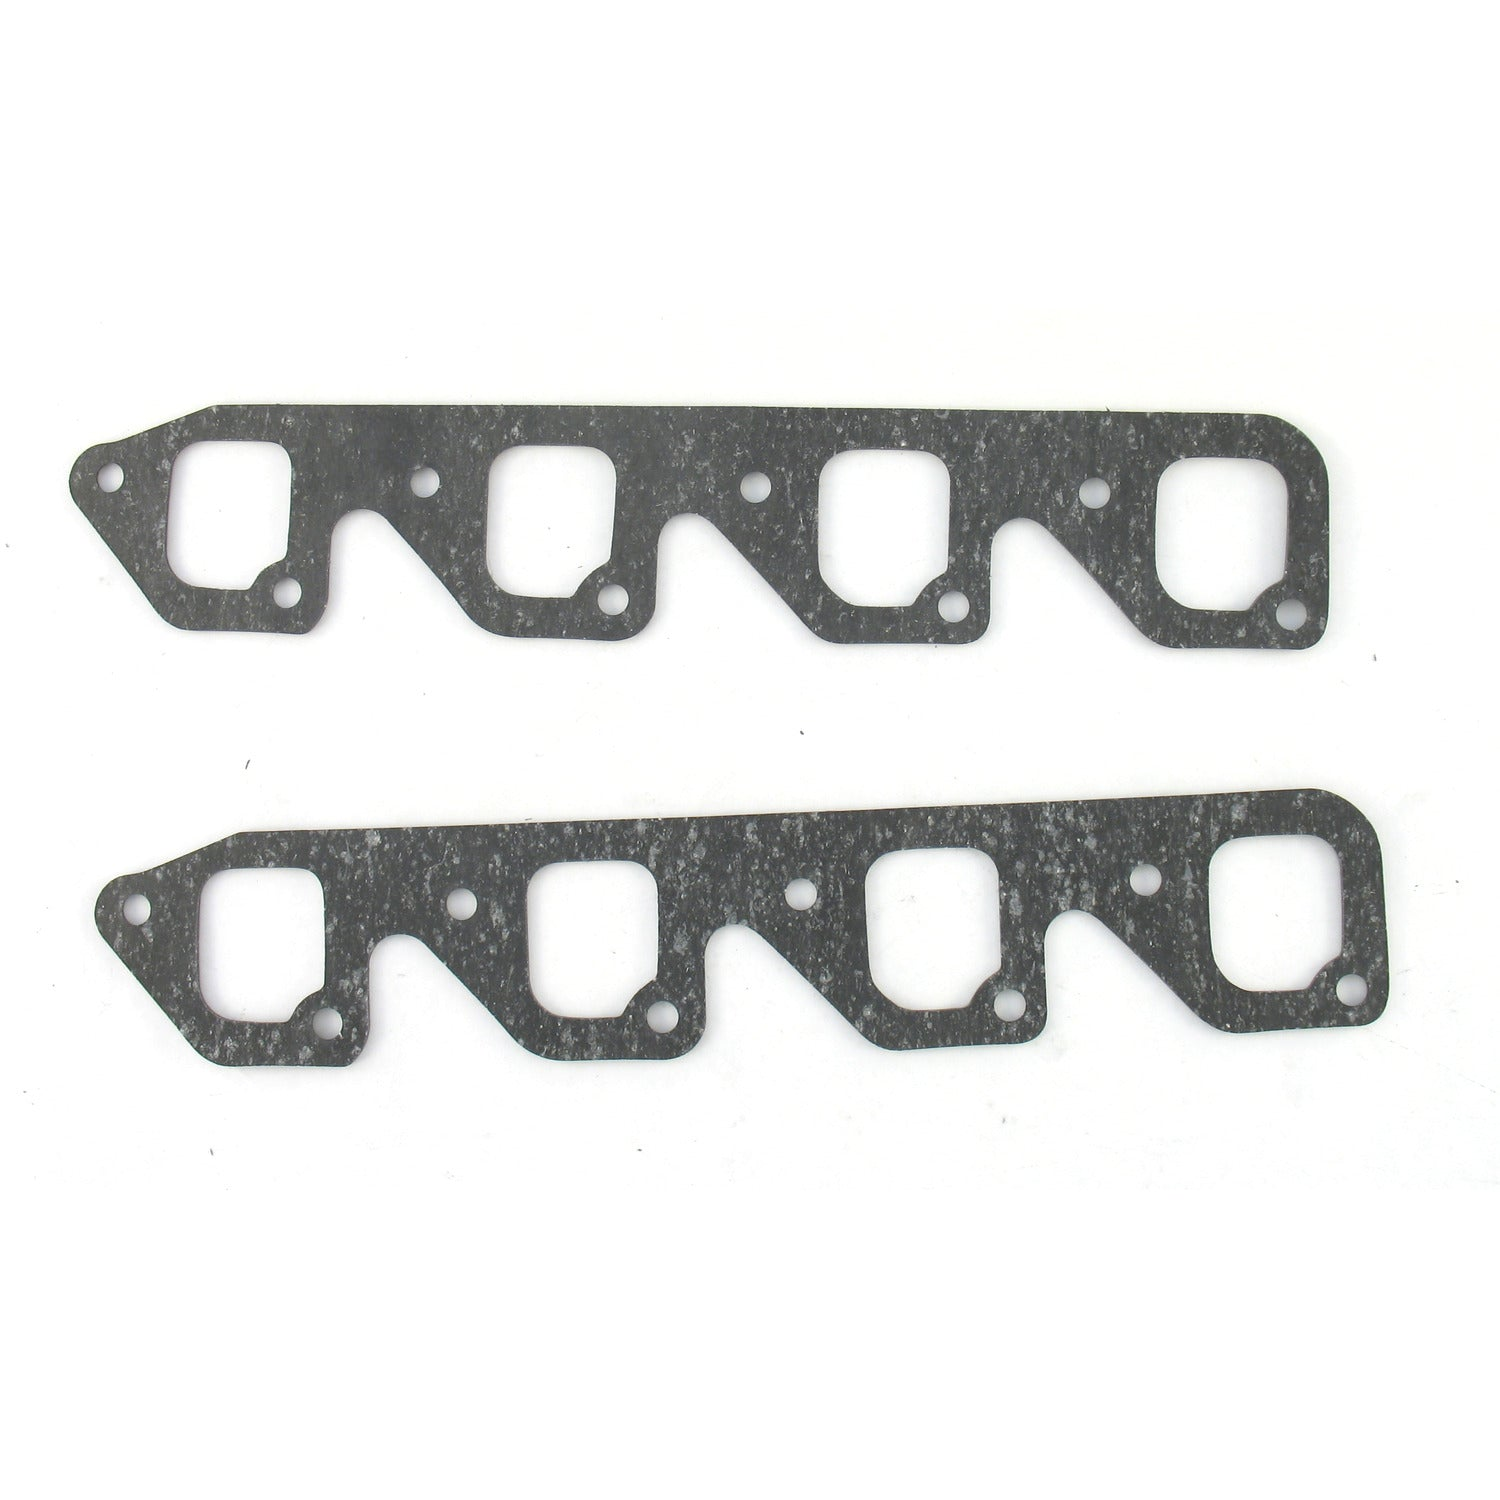 Doug's Headers HG9265 Ford 351C (4bbl head)square  port Header Flange Gaskets